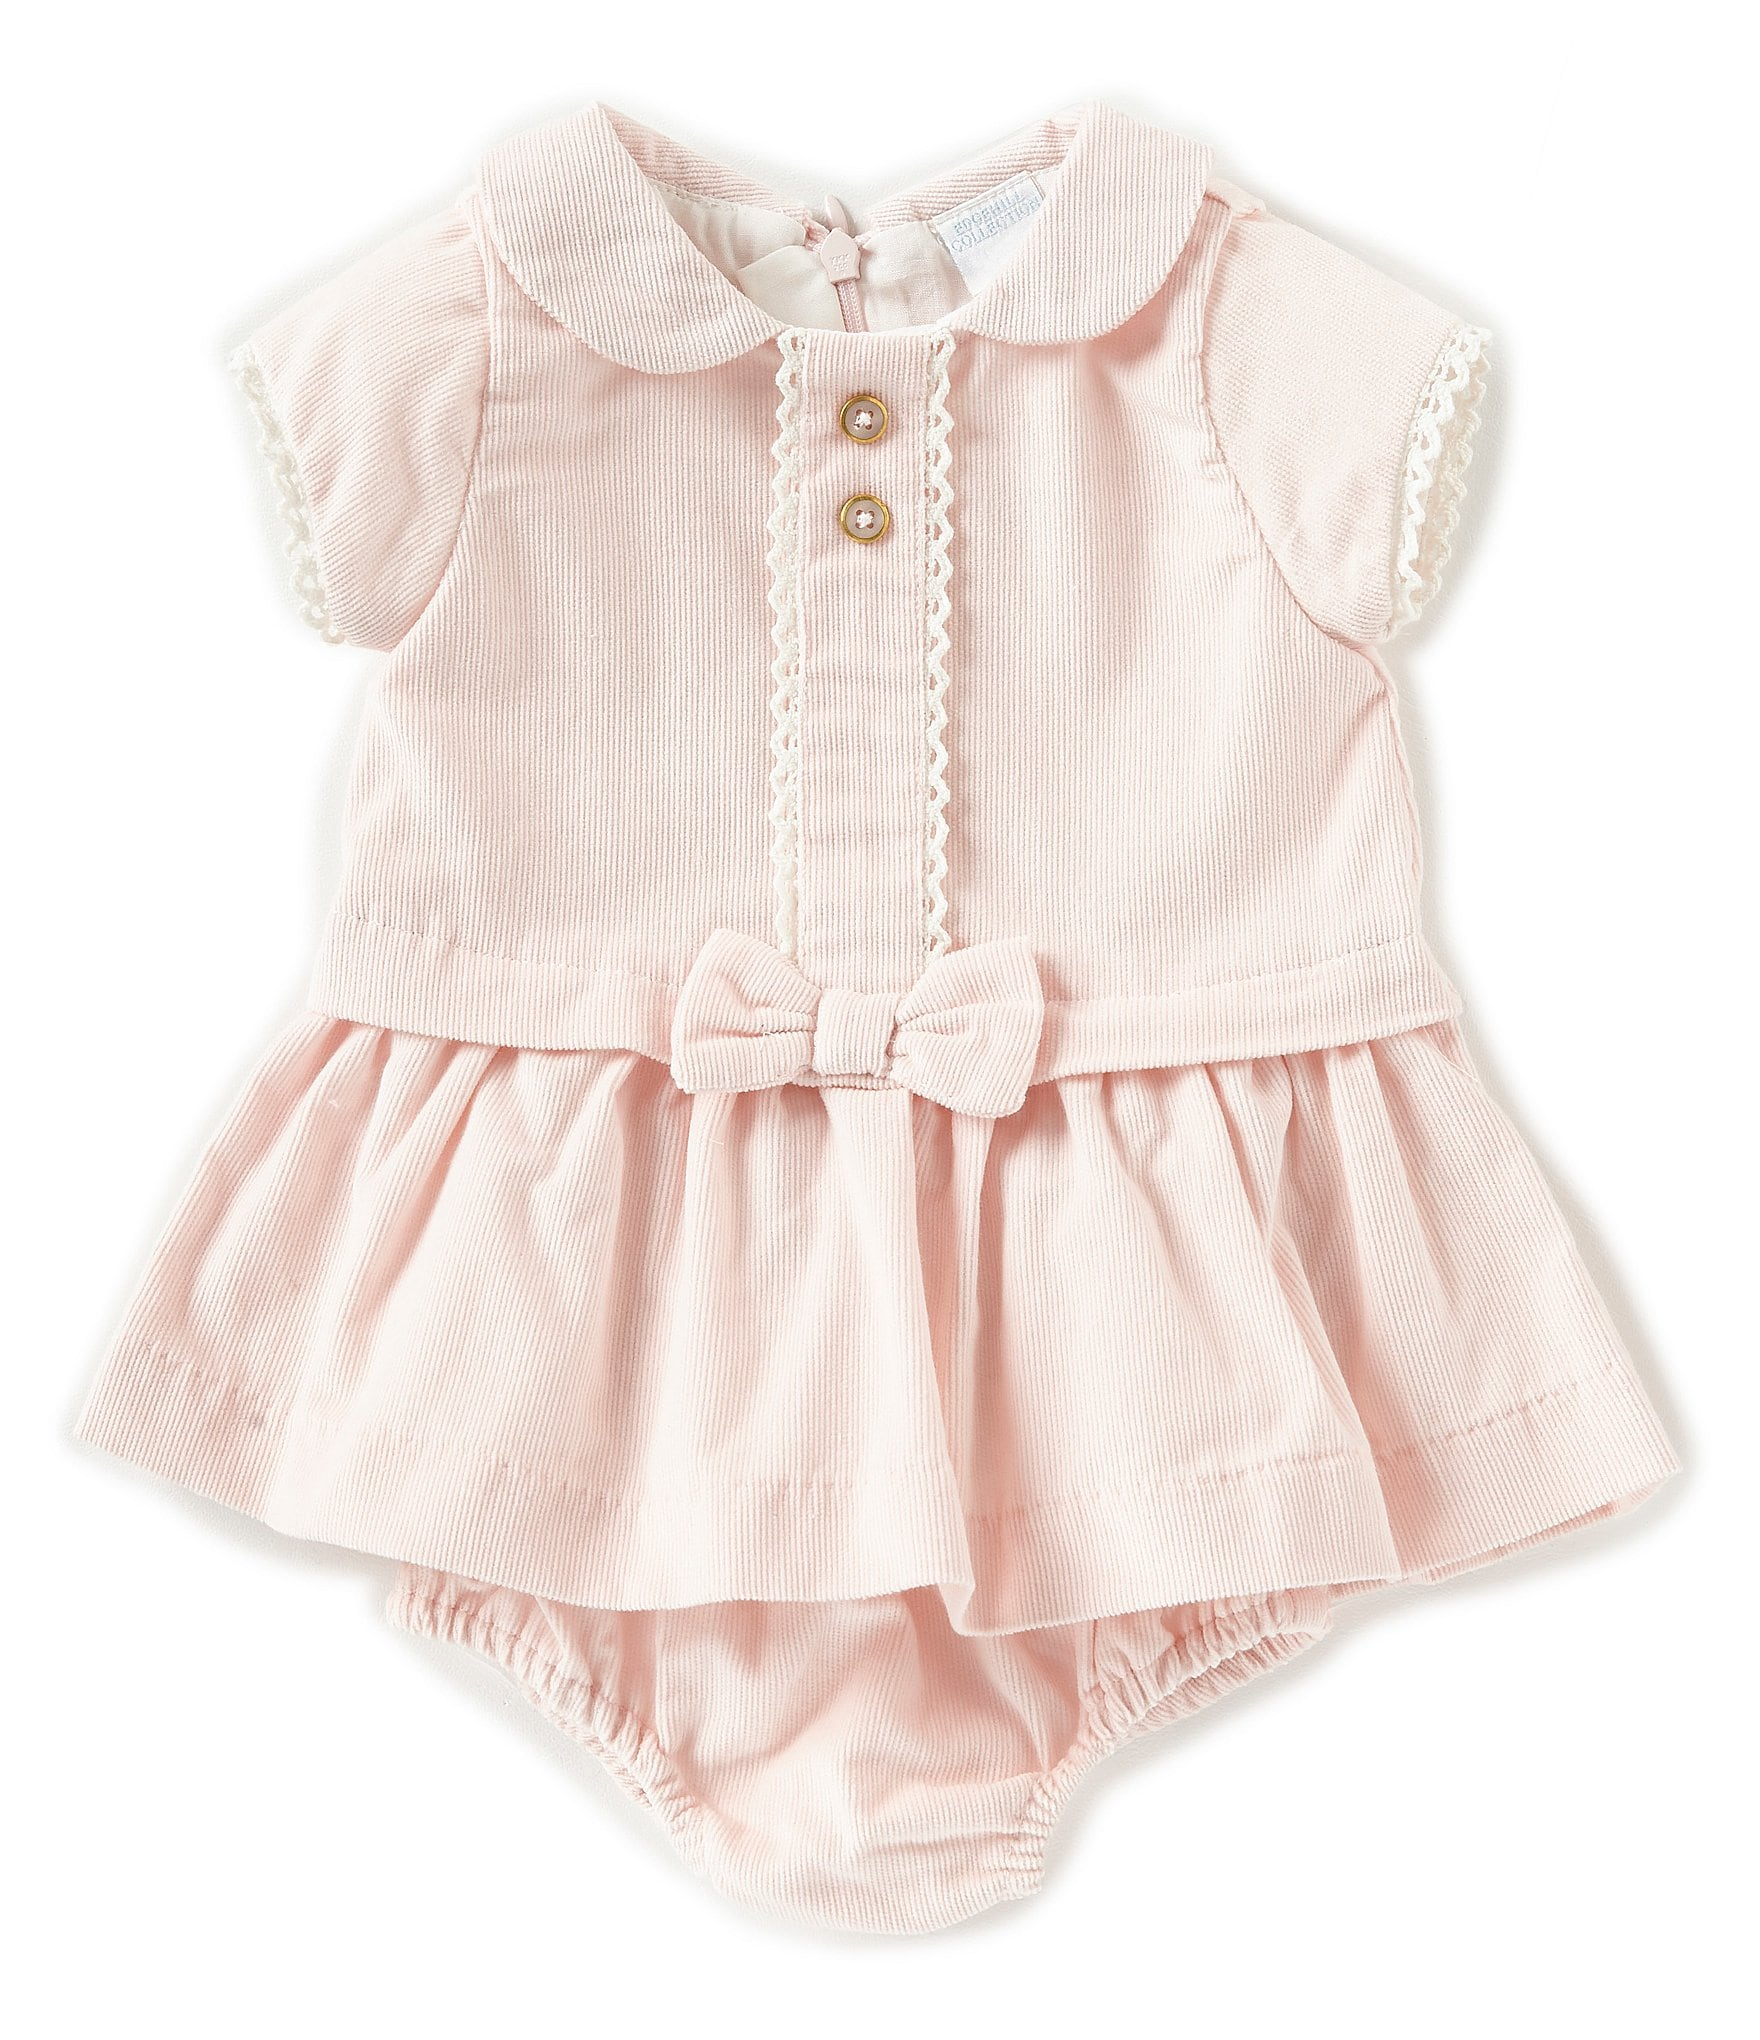 1931e5e84 Below Knee Baby Girl Dresses